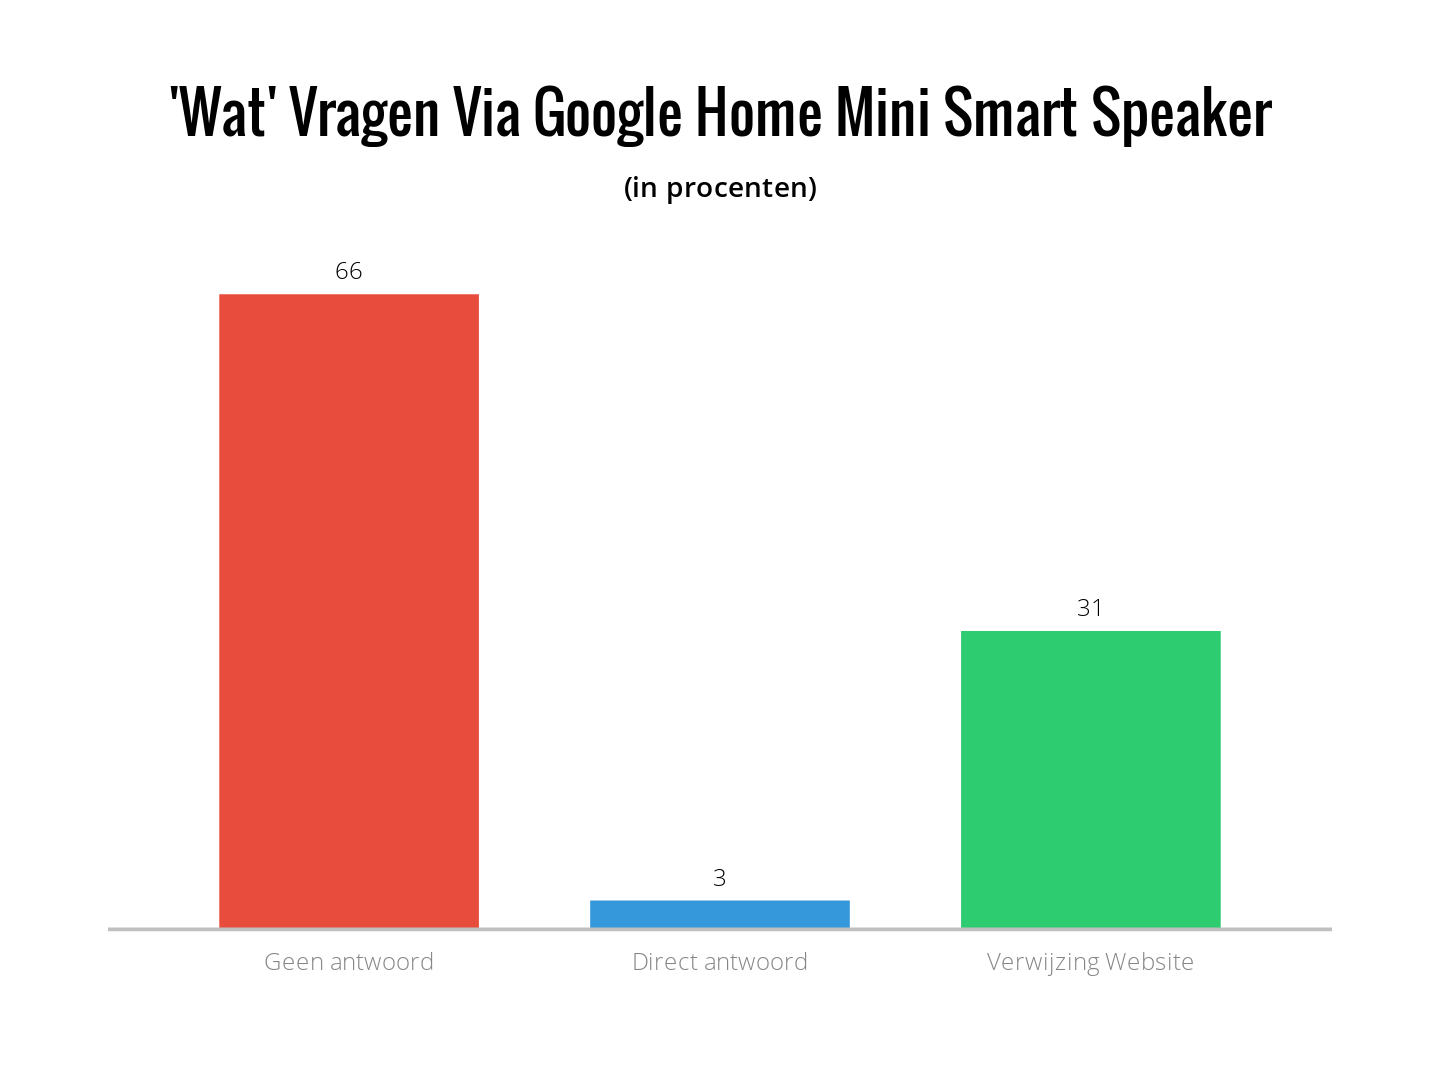 Wat vragen via Google Home Mini Smart Speaker